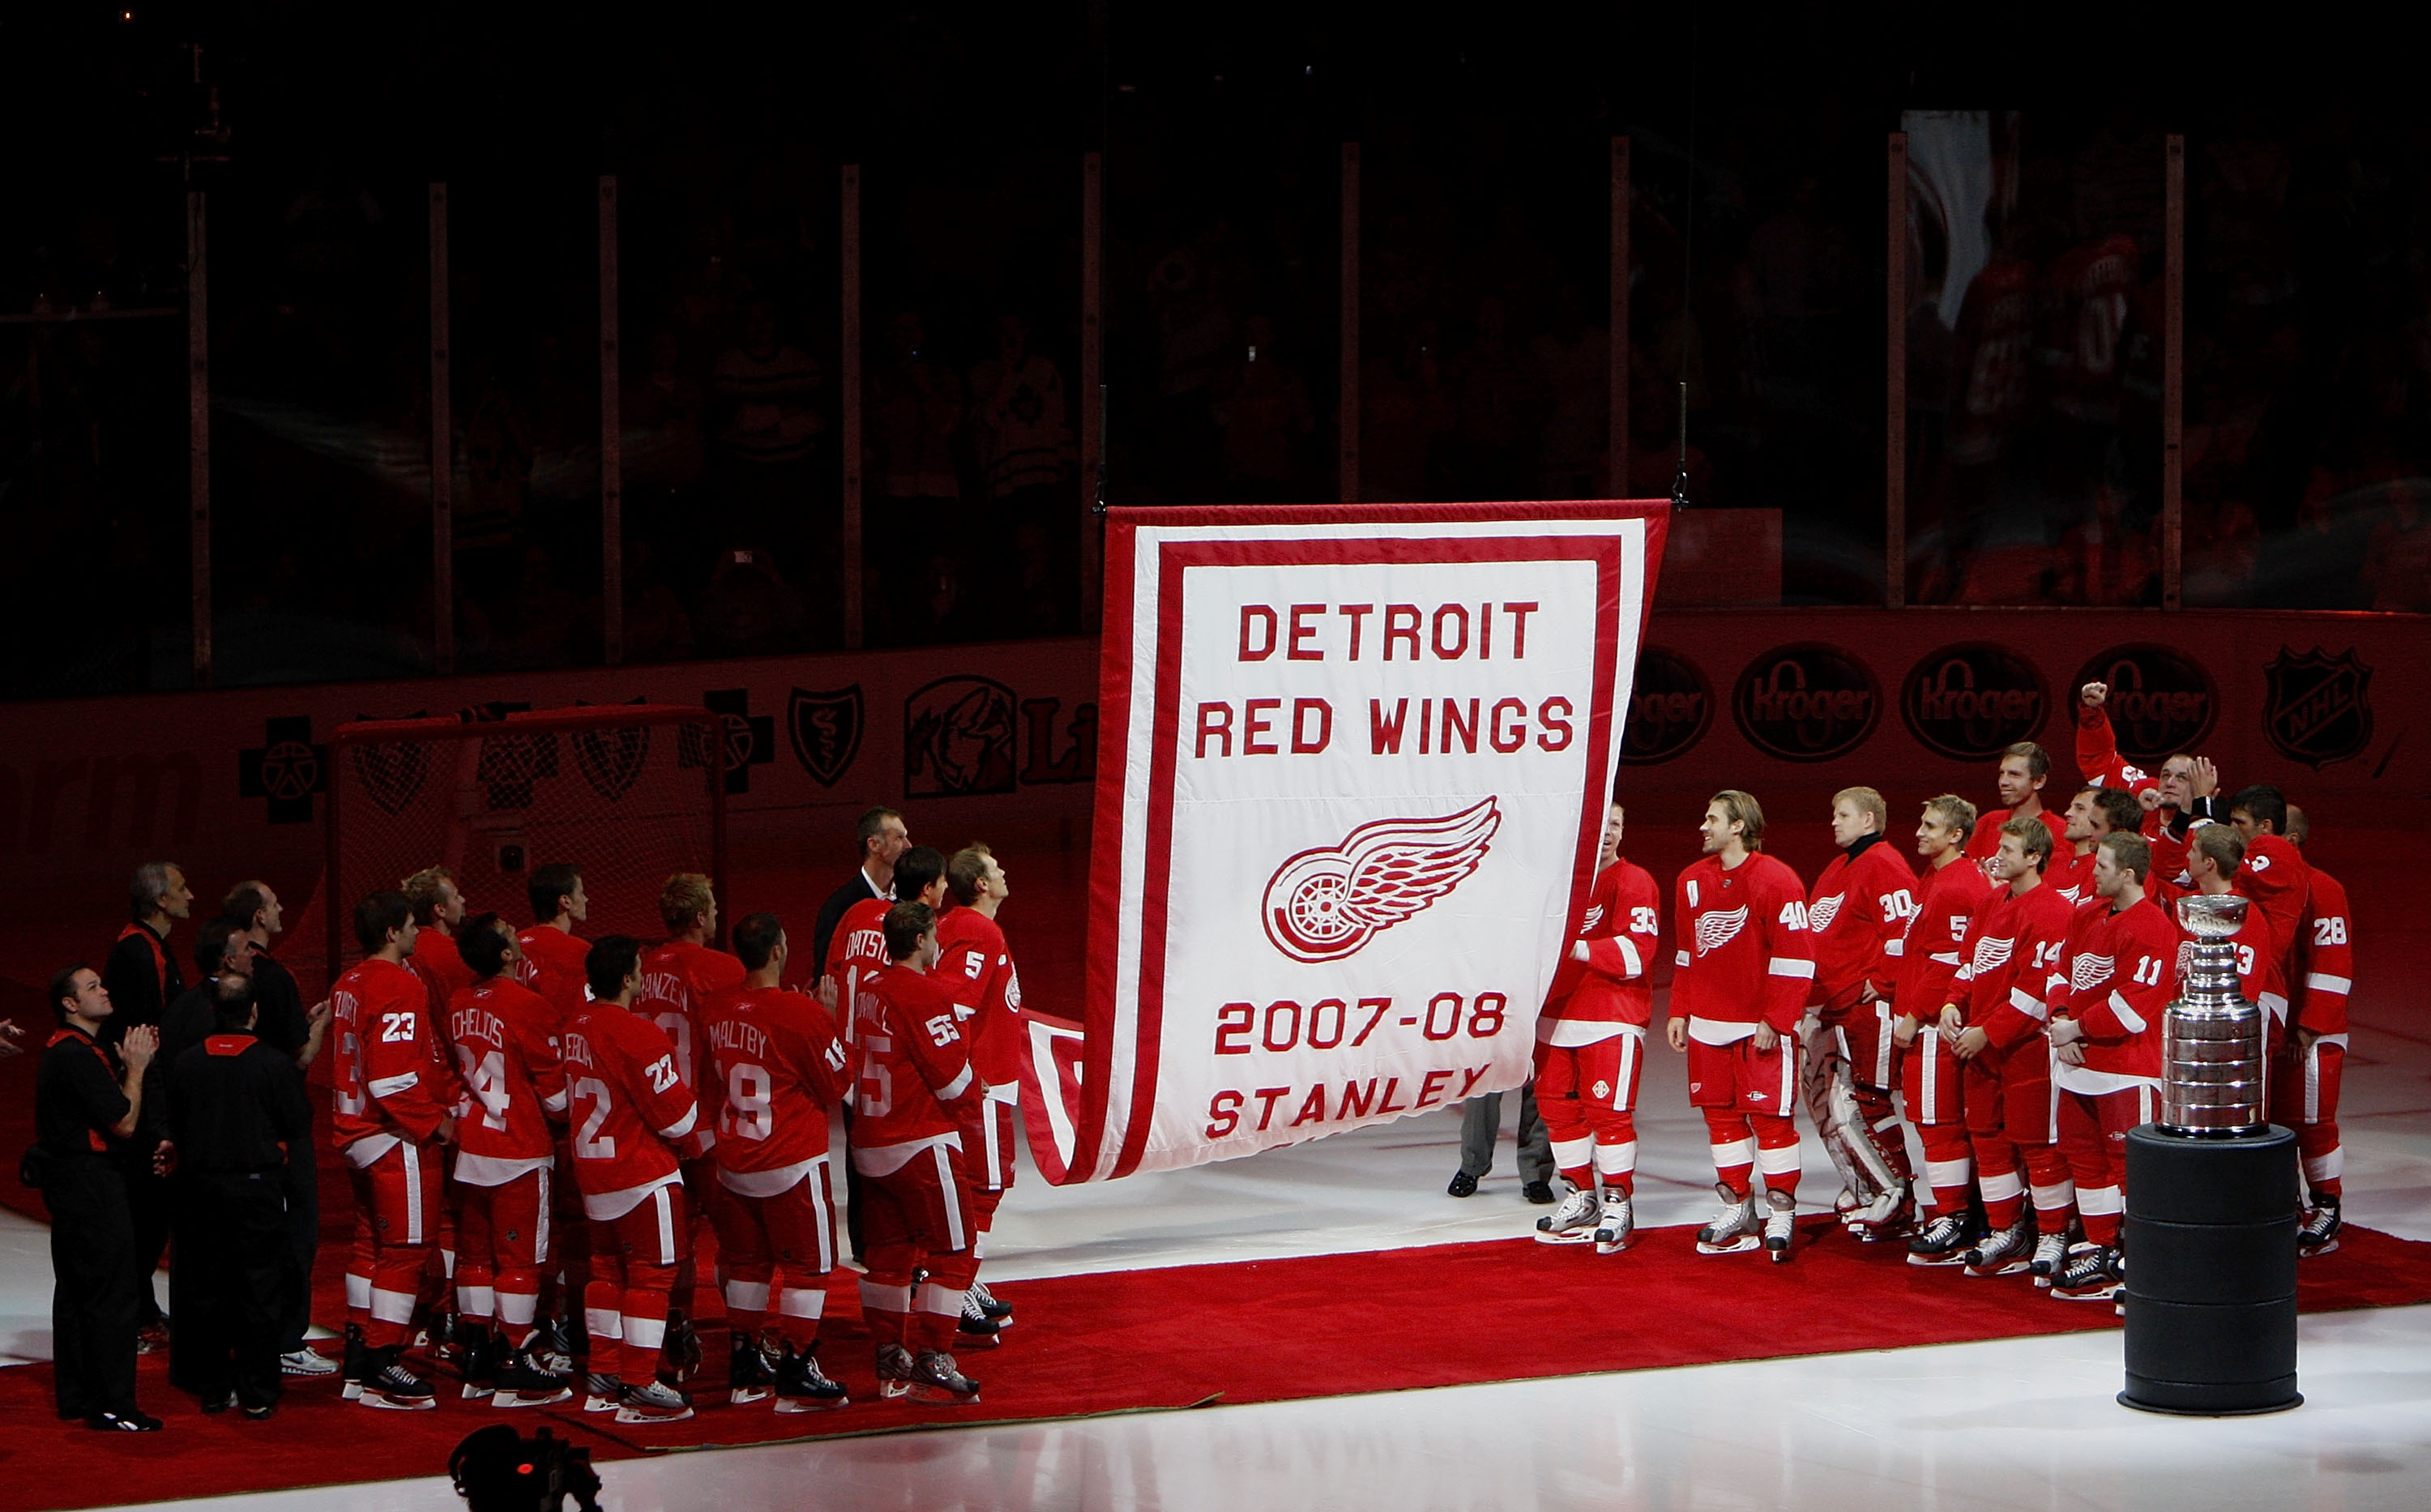 DETROIT - OCTOBER 09:  Members of the 2007-2008 Detroit Red Wings watch their Stanley Cup championship banner raise to the rafters prior to playing the Toronto Maple Leafs on October 9, 2008 at Joe Louis Arena in Detroit, Michigan.  (Photo by Gregory Sham